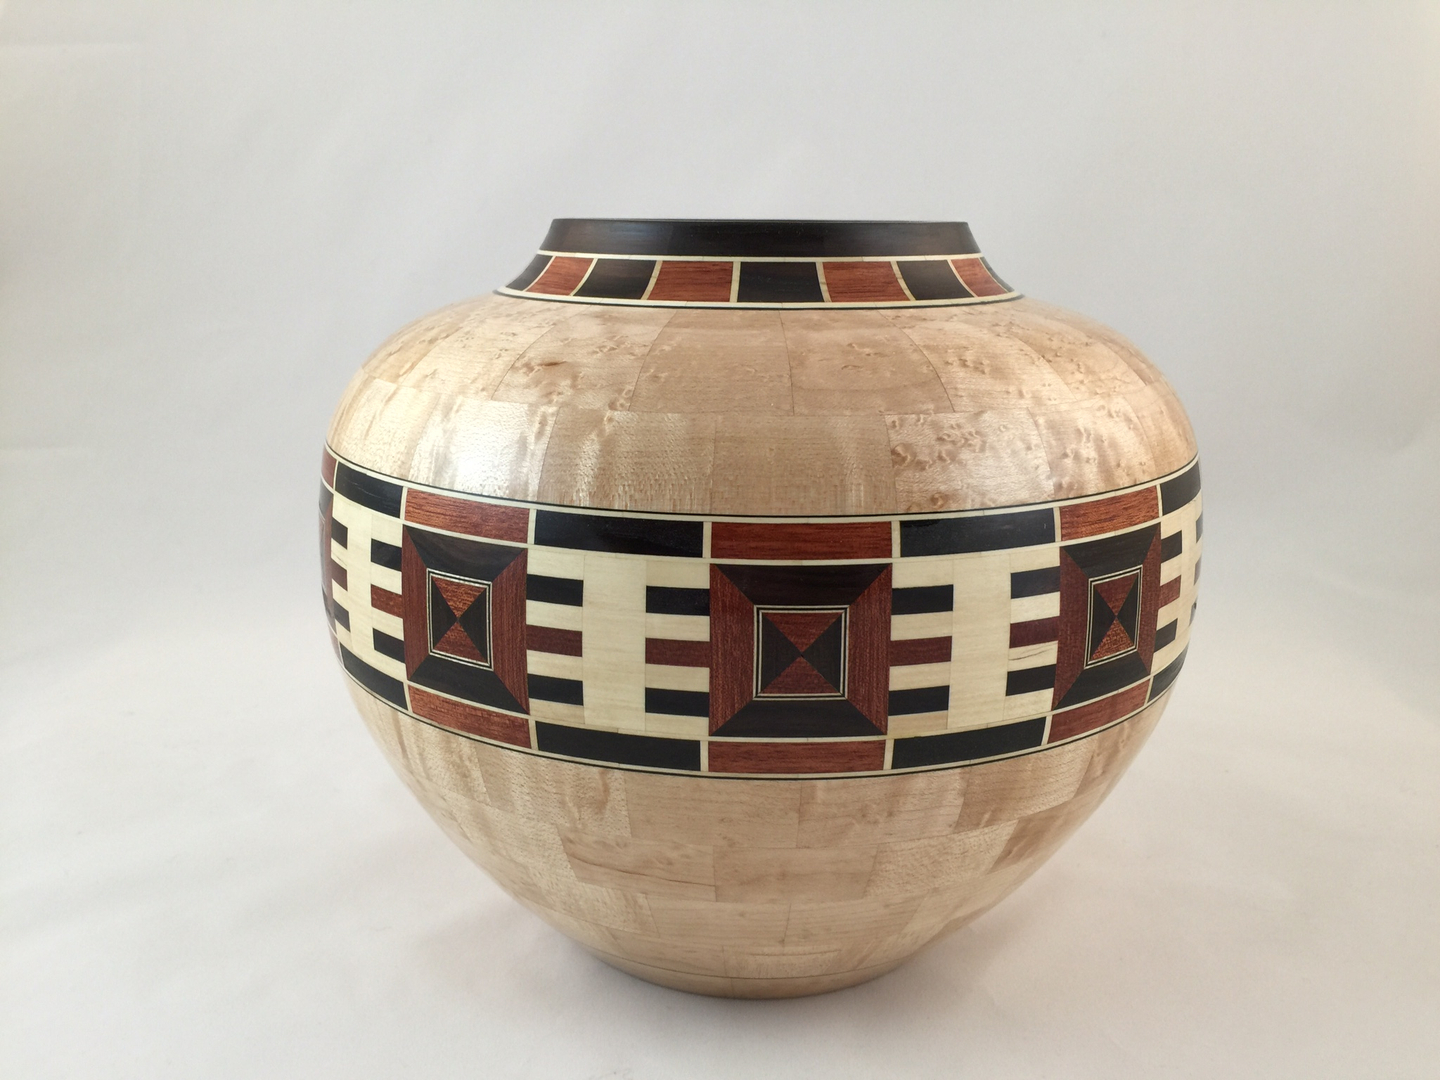 Home wood lathe and turned to create a one of a kind eye catching gift or keepsake domestic and exotic woods are used to create unique vases reviewsmspy